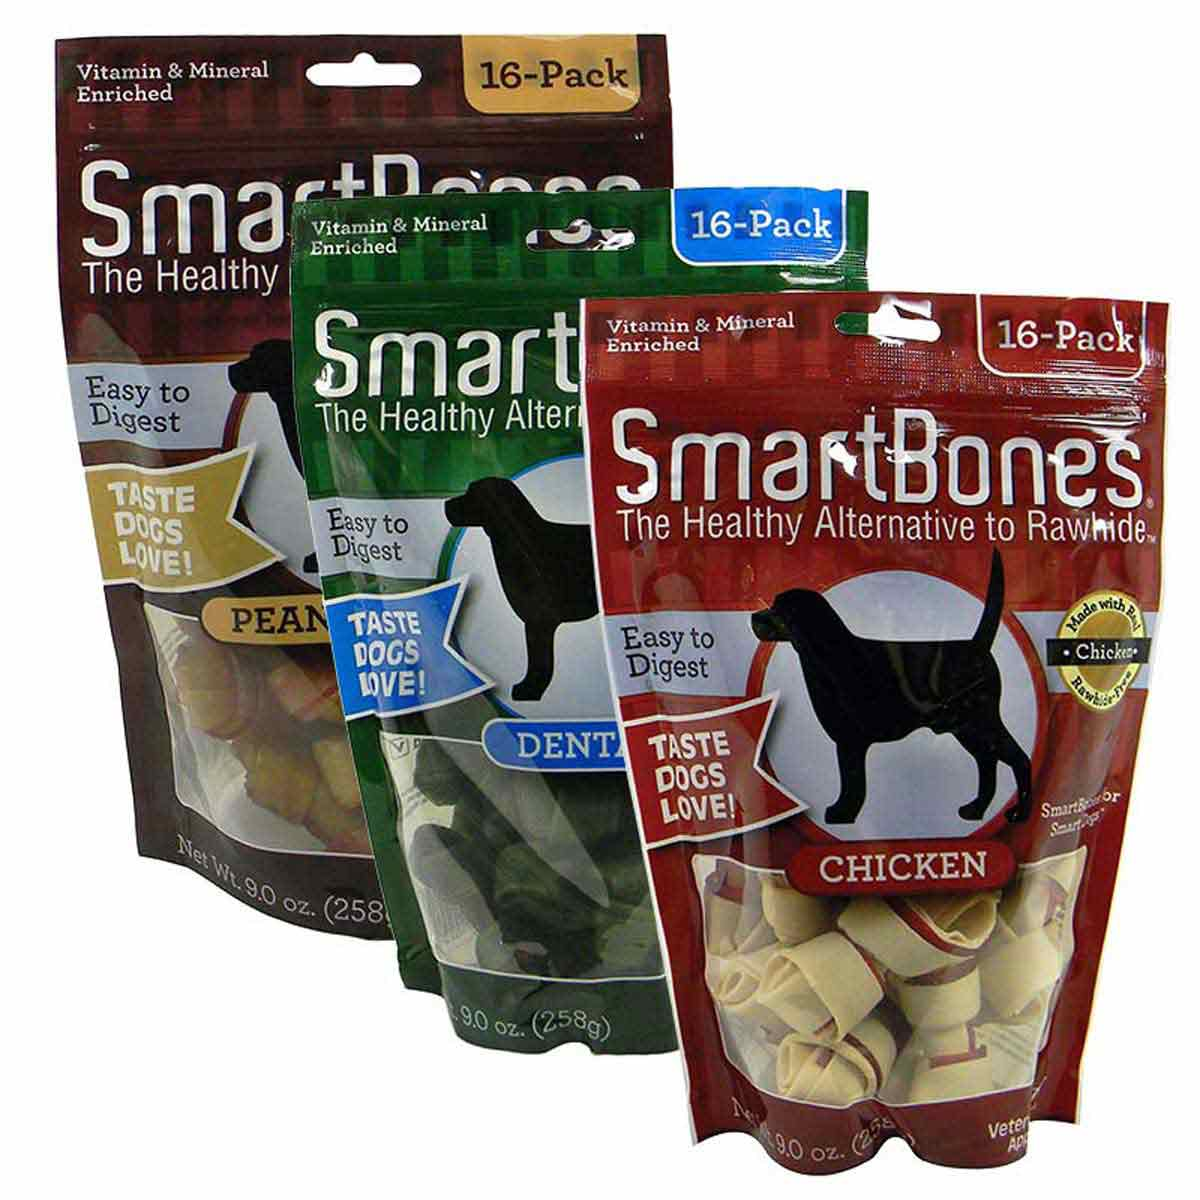 Choose from Chicken, Peanut Butter, and Dental SmartBones Mini 16 Pack at Ryan's Pet Supplies